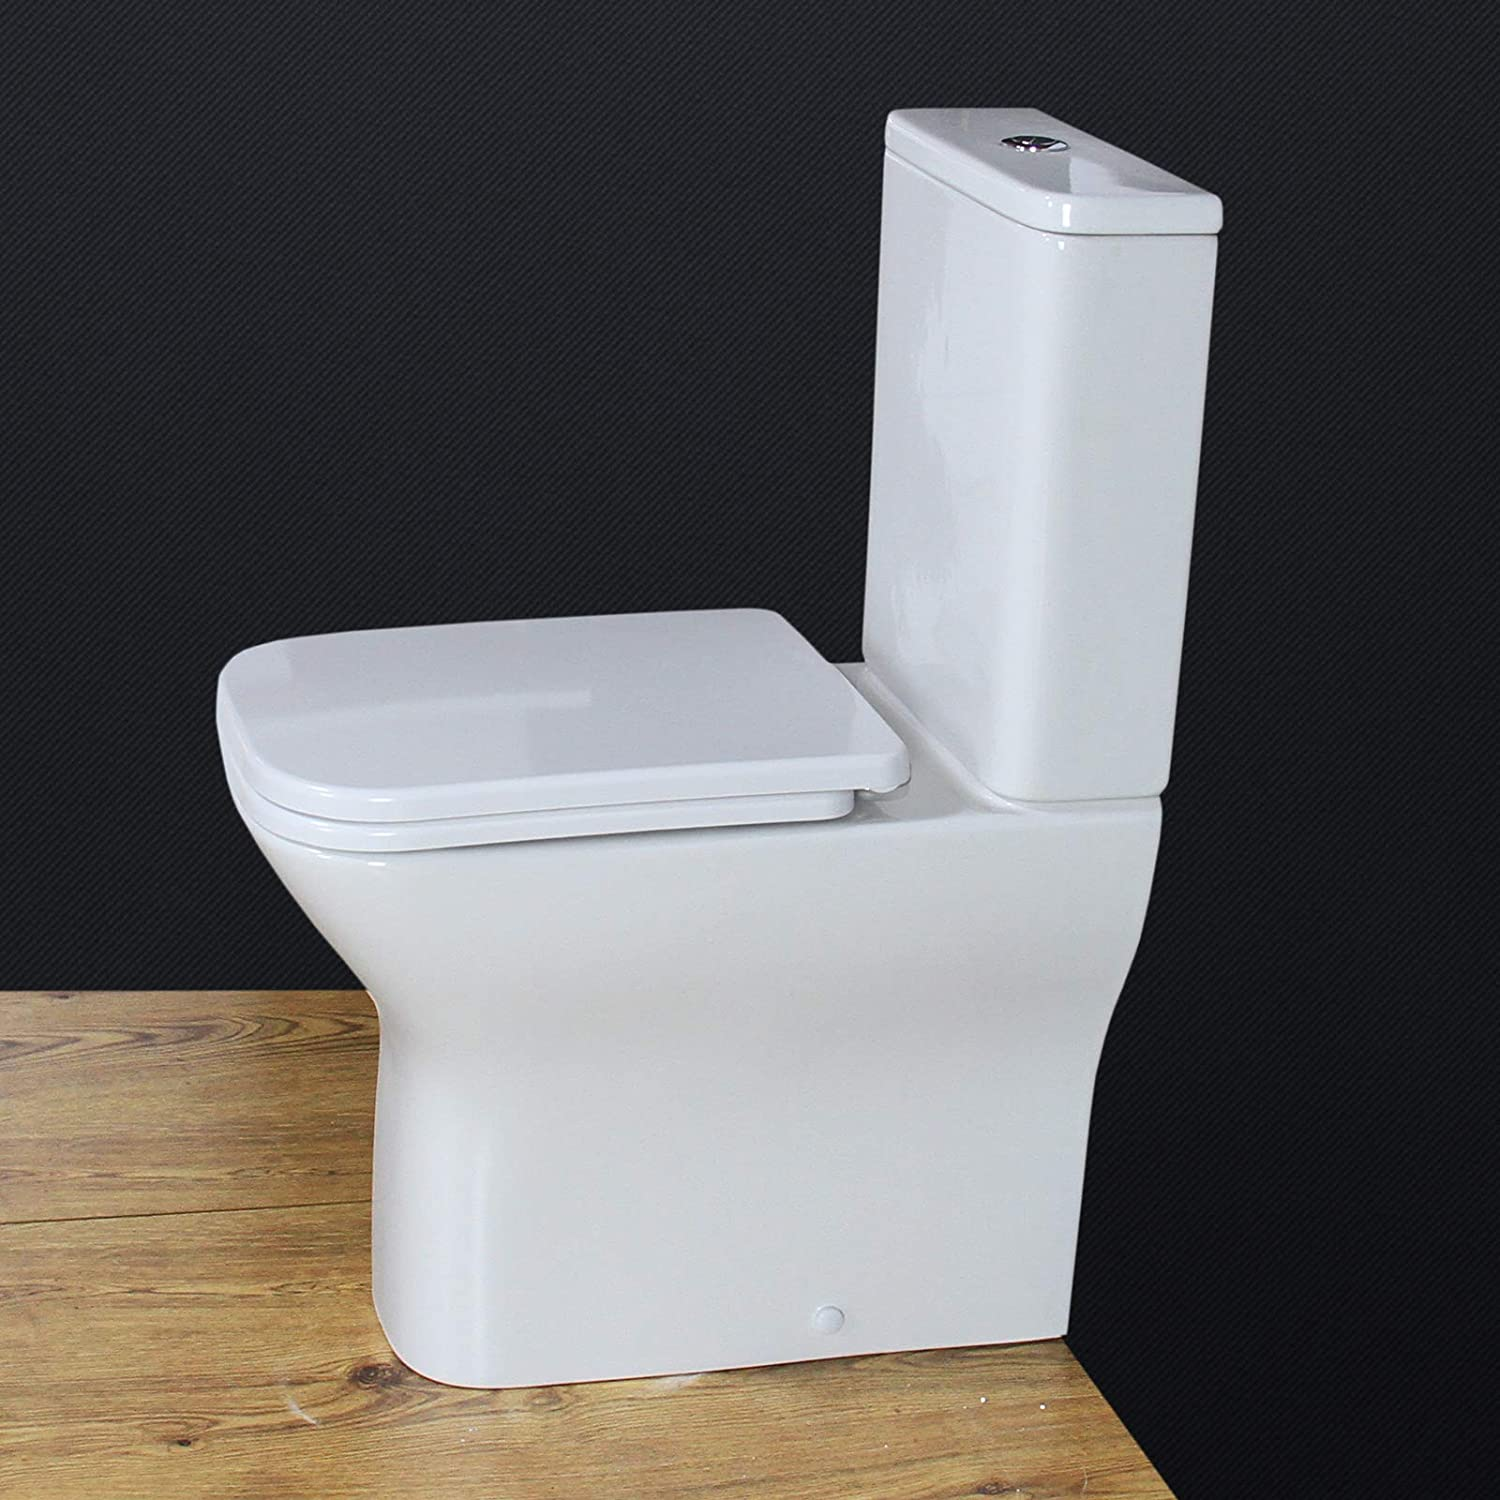 KLARA Toilet WC Close Coupled square bowl Cloakroom Extra Height Heavy Duty Seat